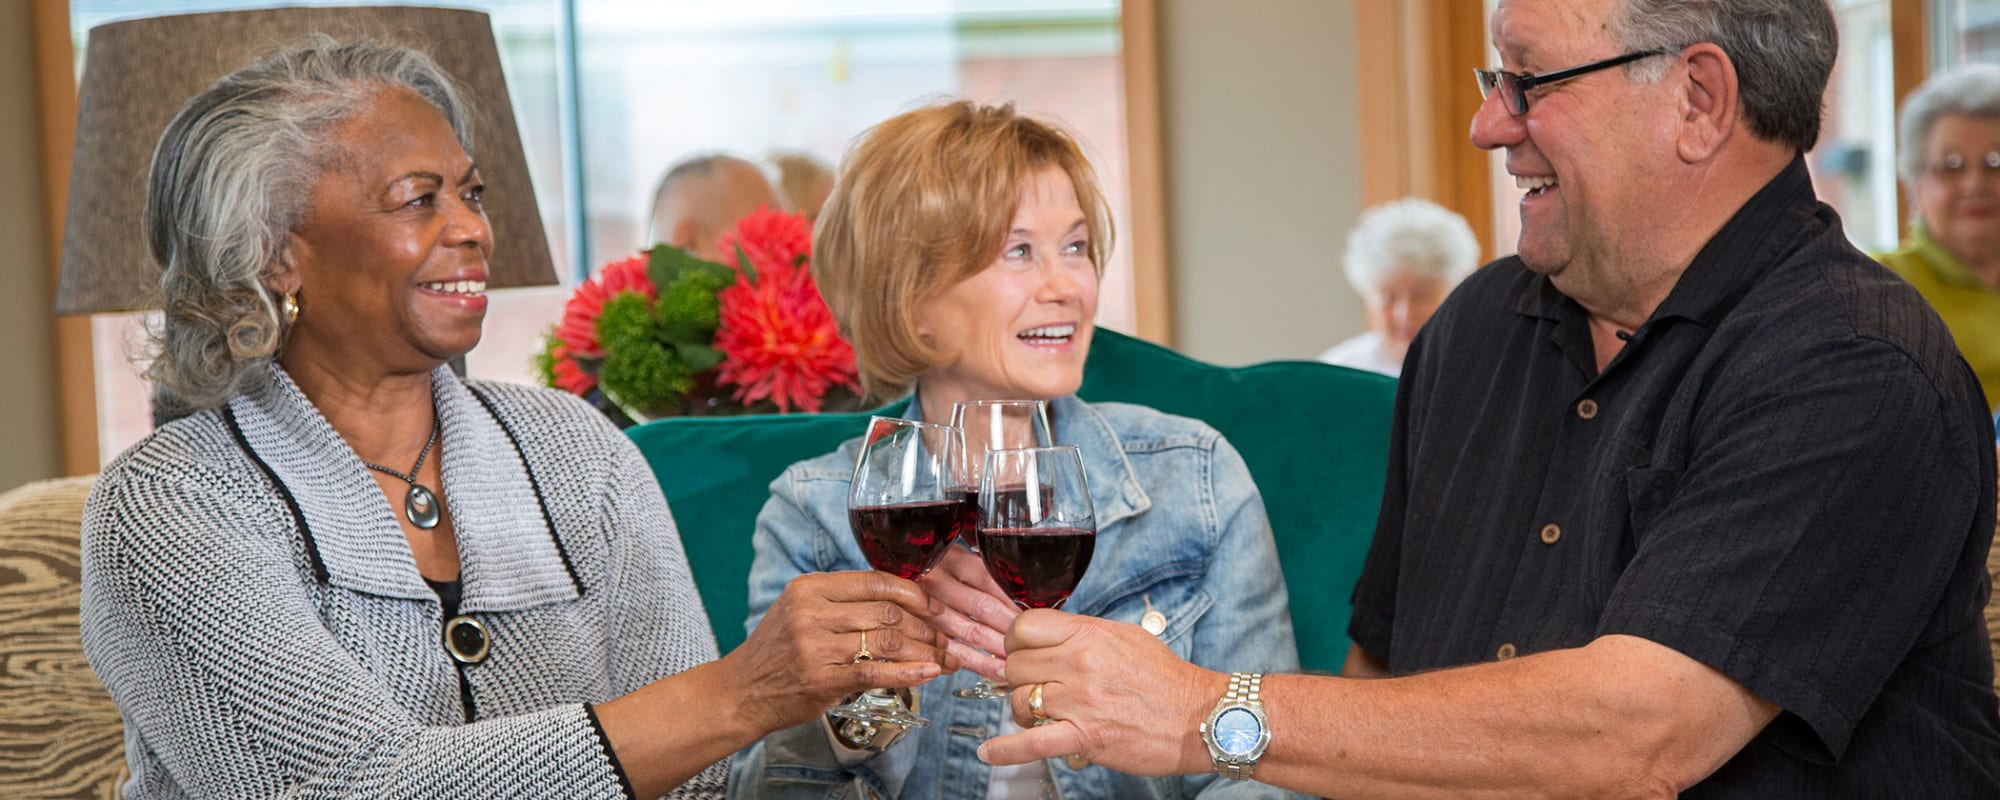 Residents enjoying a glass of wine at one of our communities at All Seasons Senior Living in Farmington Hills, Michigan